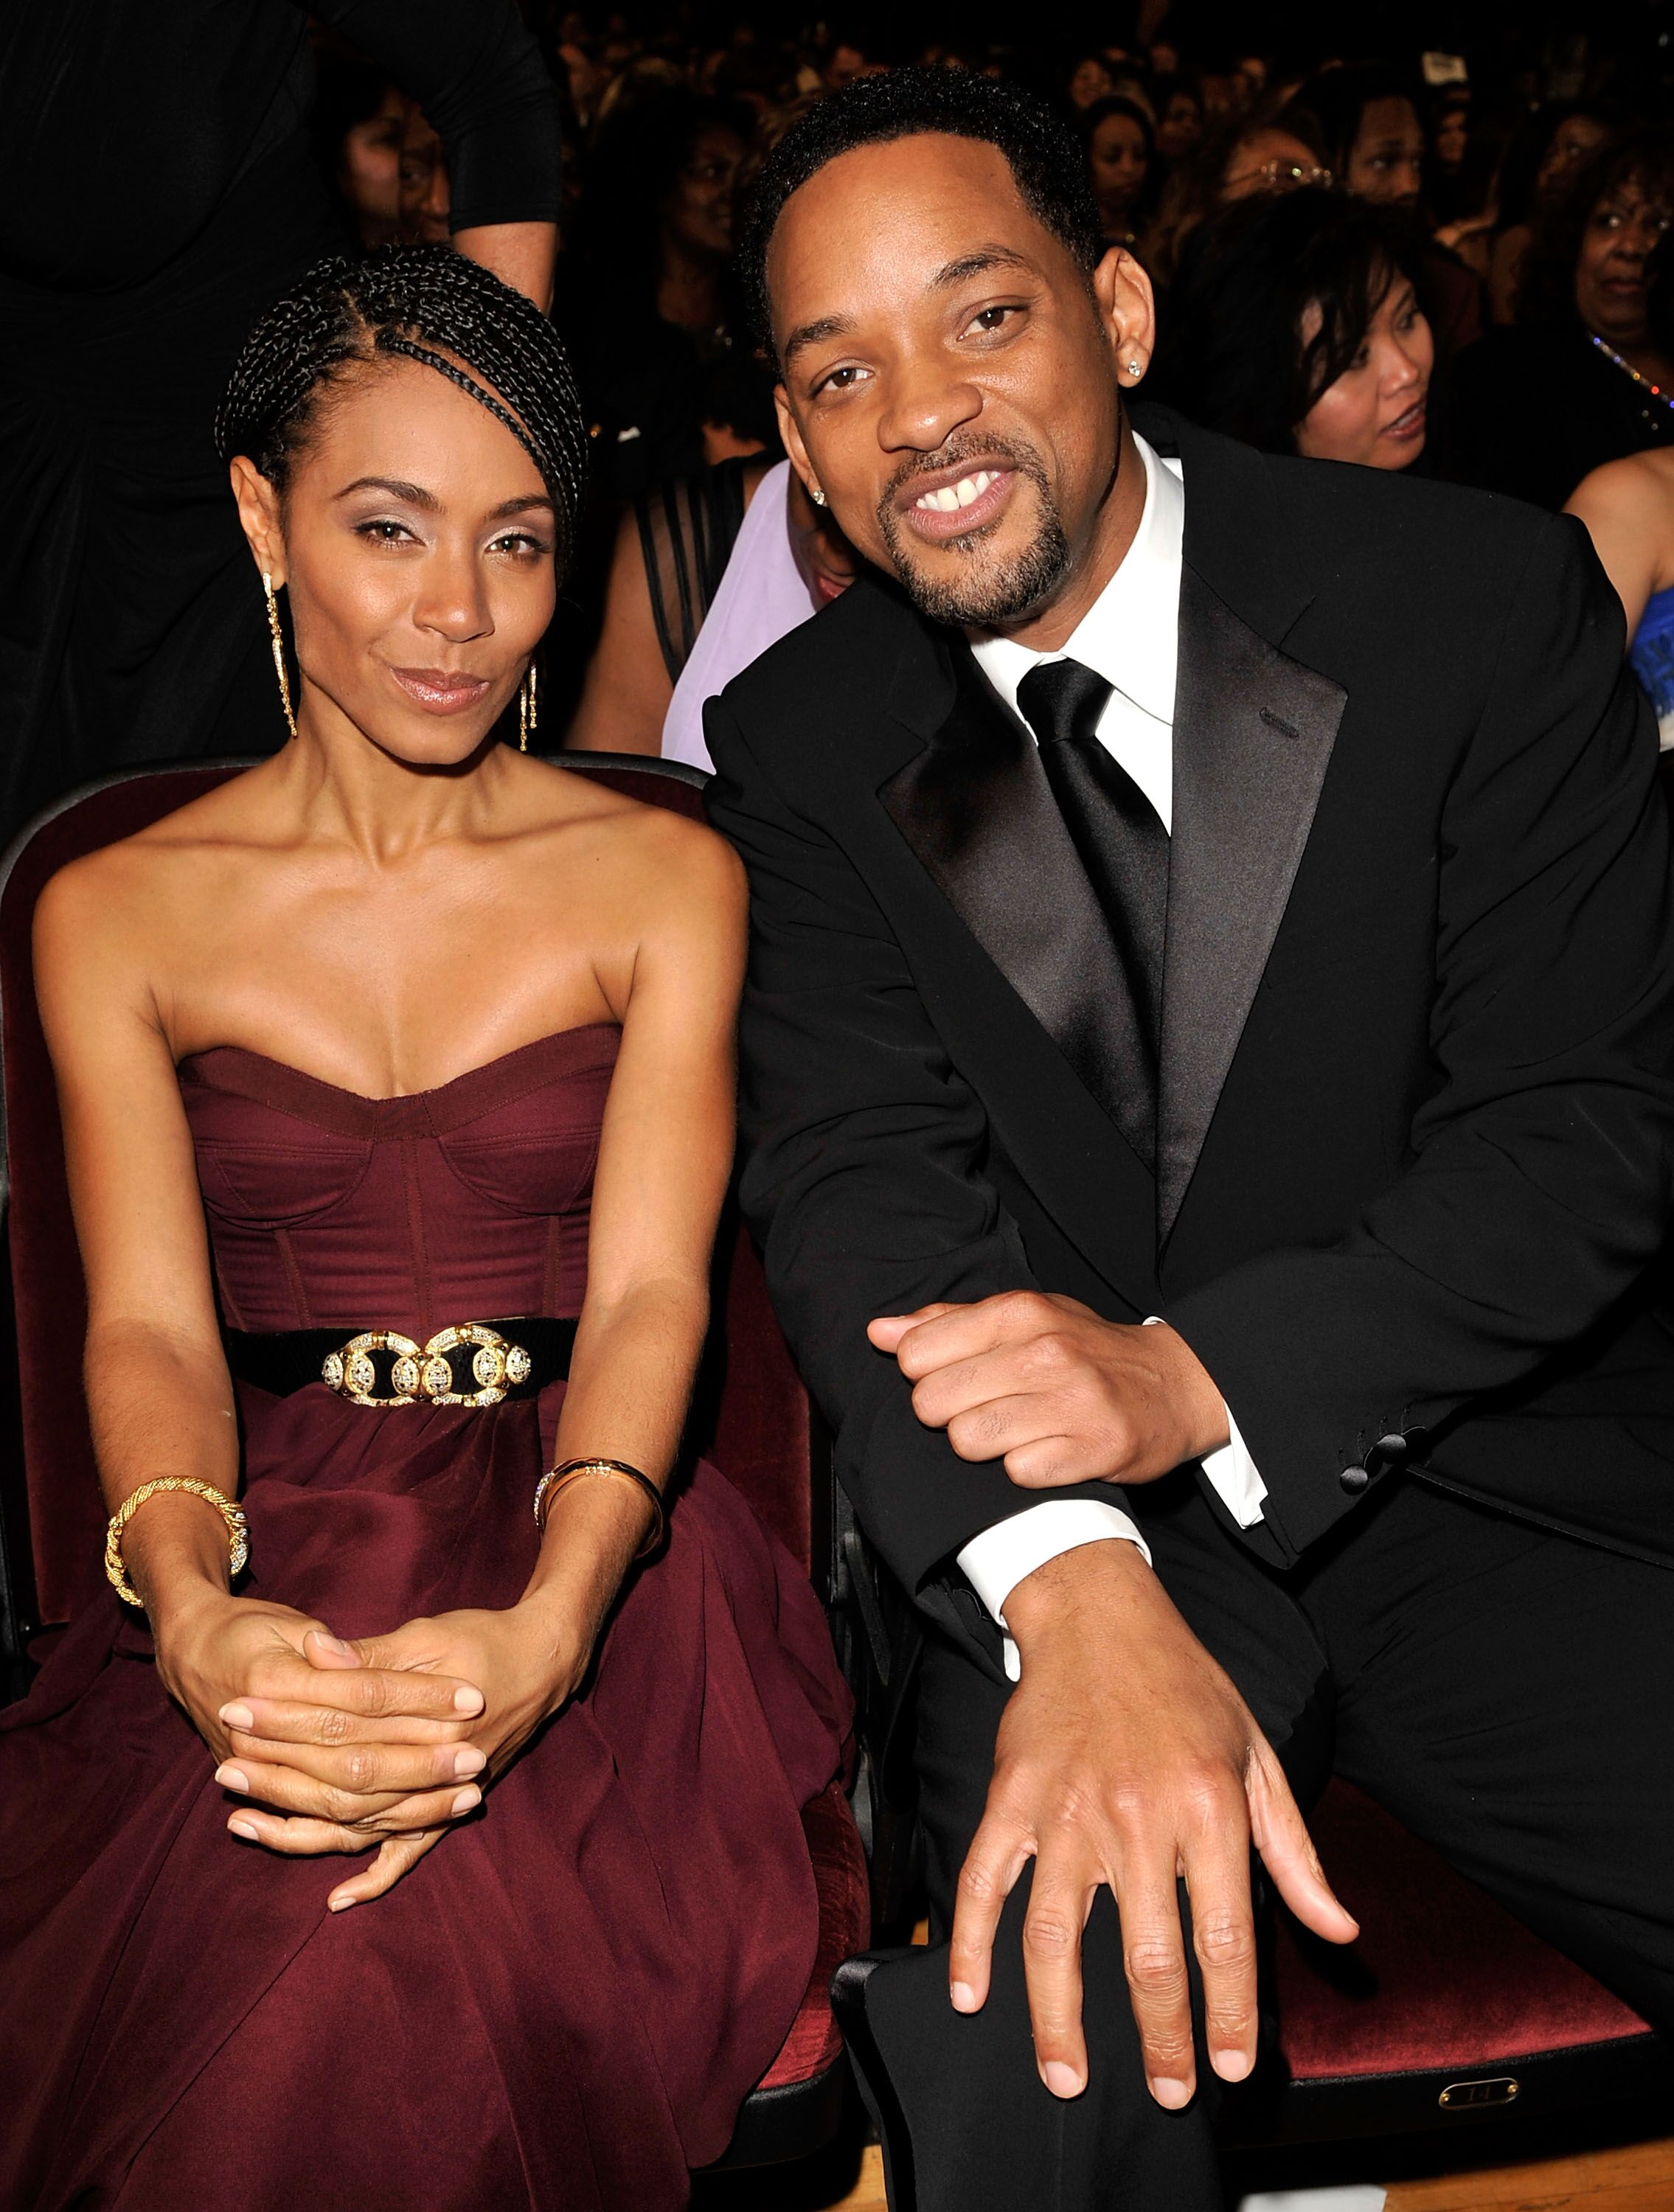 Will Smith and Jada Pinkett Smith at the 40th NAACP Image Awards/ Source: Getty Images